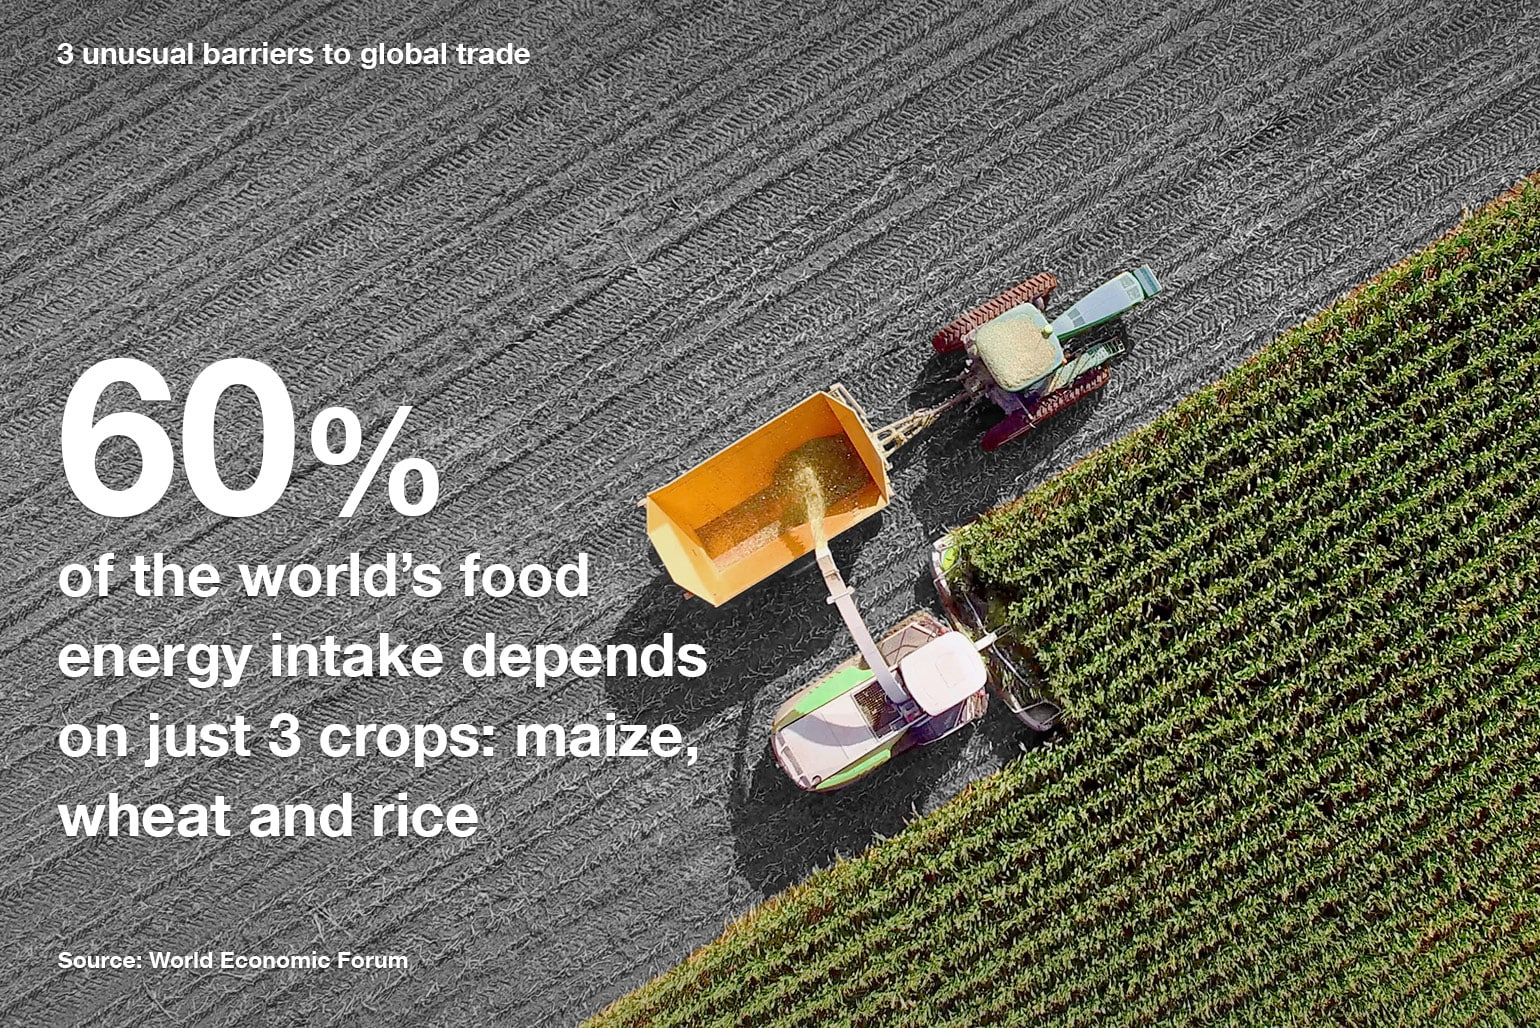 60% of the world's food energy intake depends on 3 crops